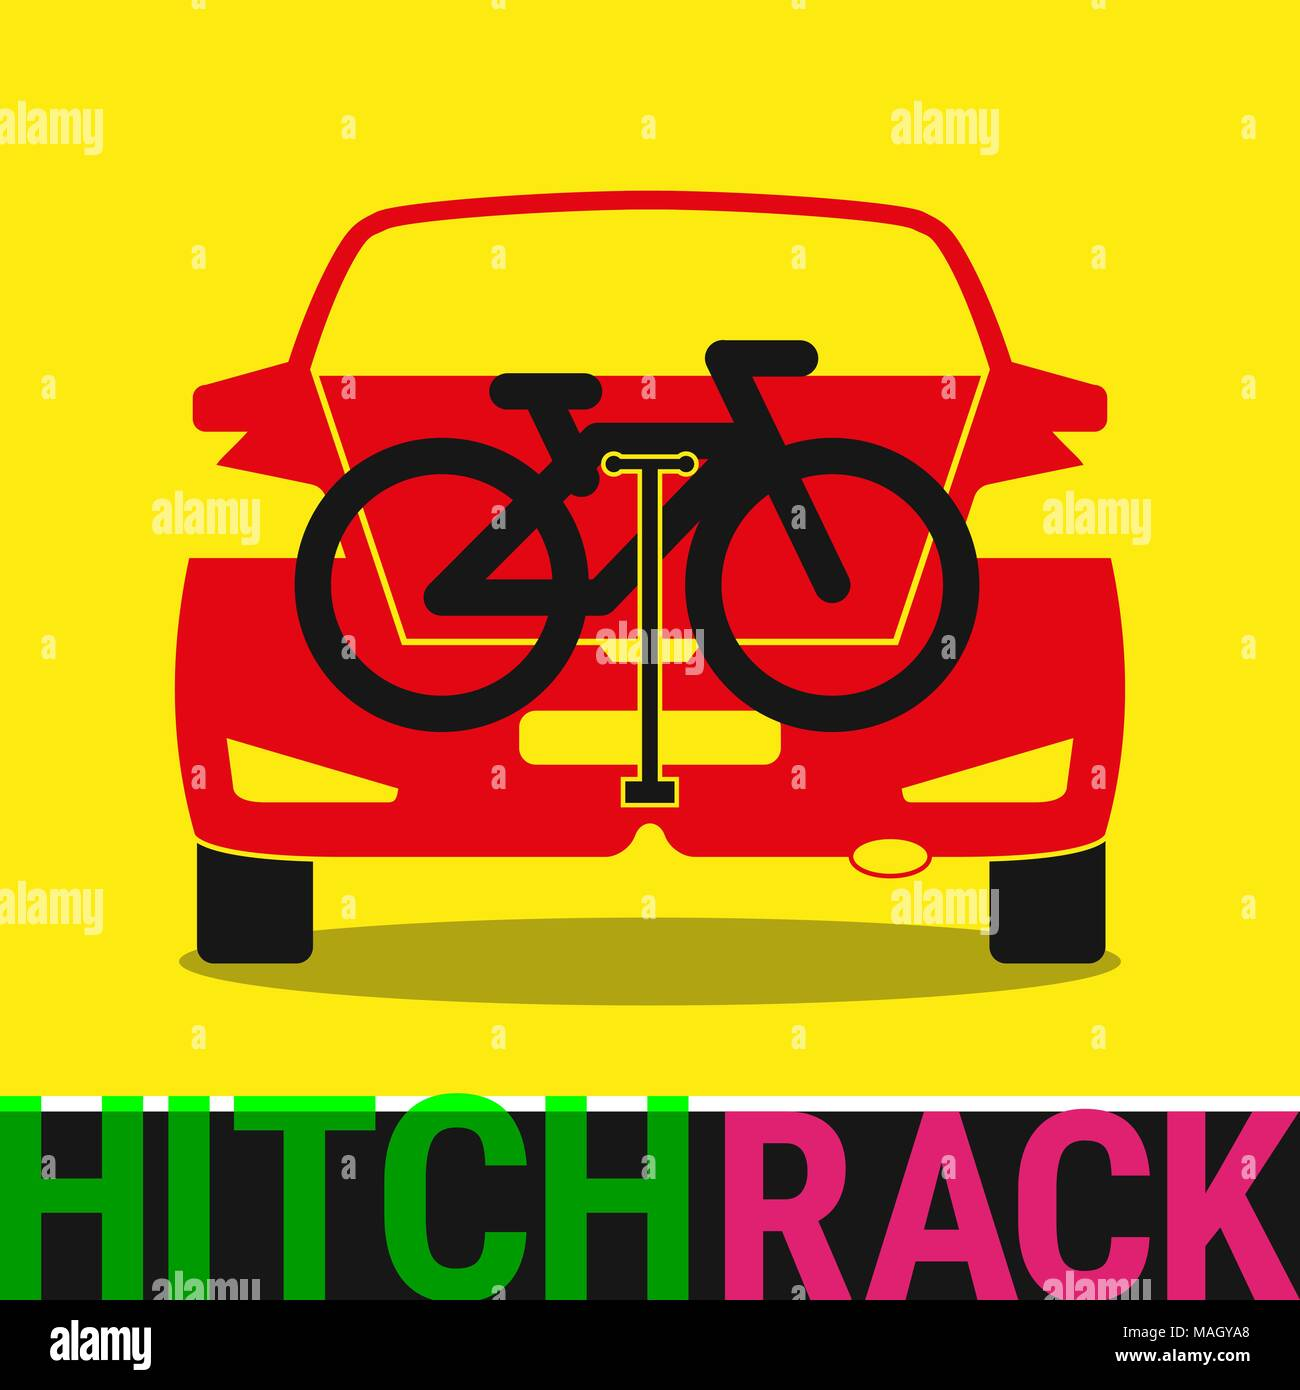 Hitch Bike Rack. Bicycle Rack Silhouette Illustration - Stock Vector